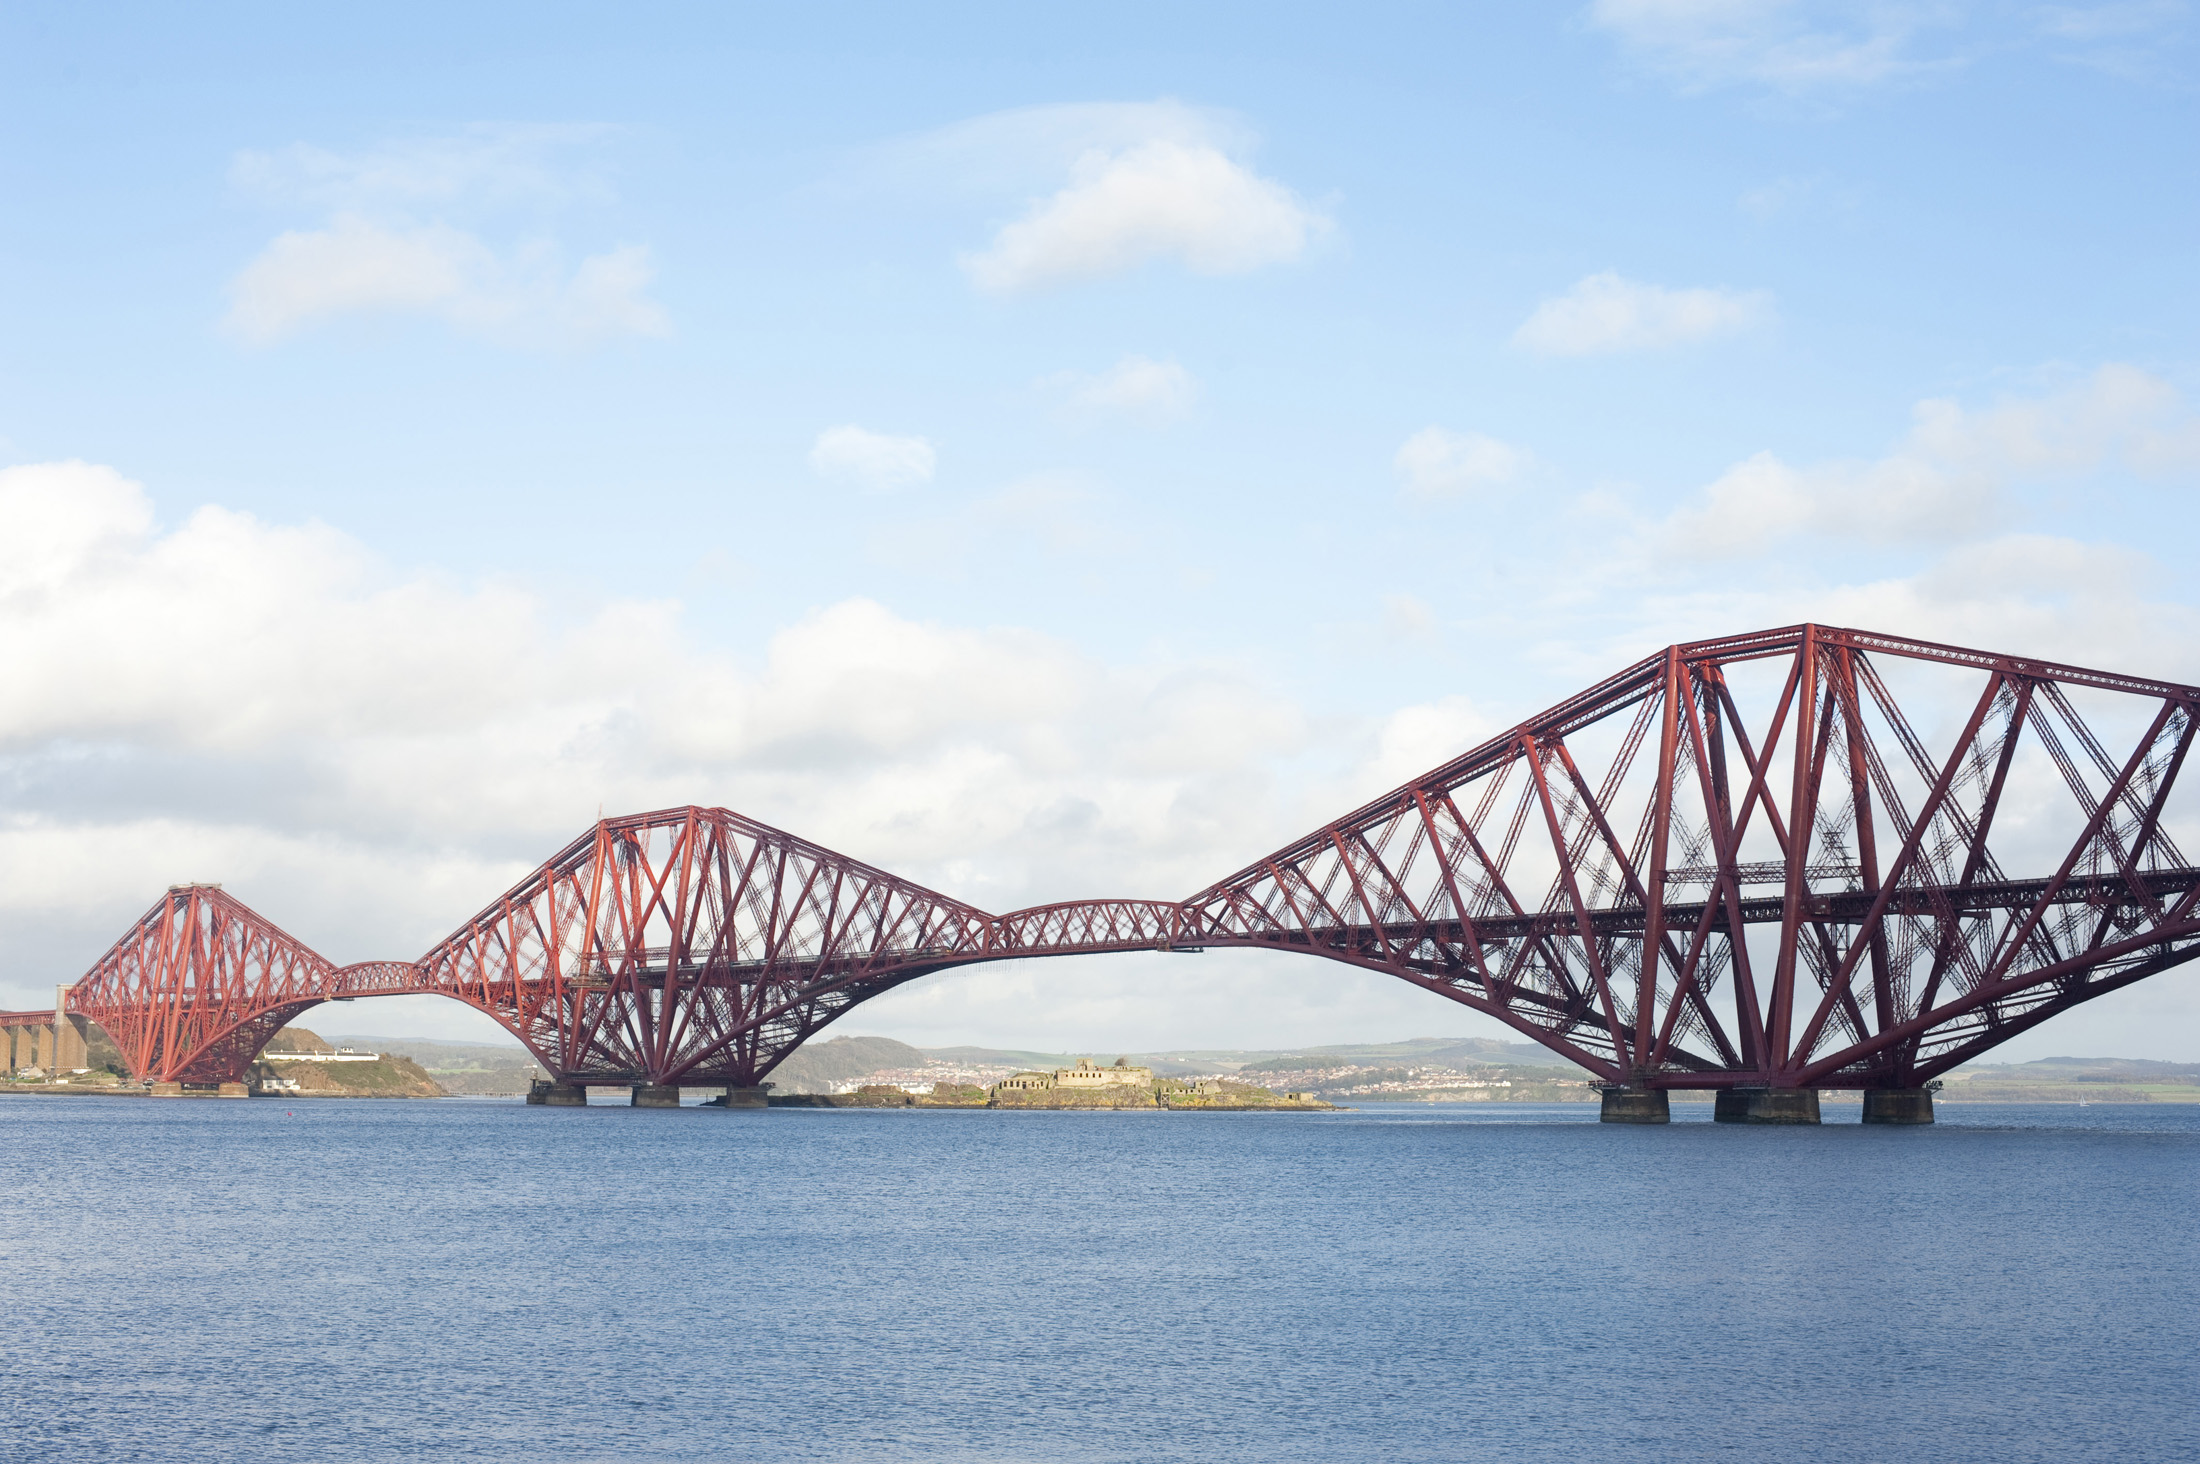 Forth Bridge Backgrounds on Wallpapers Vista